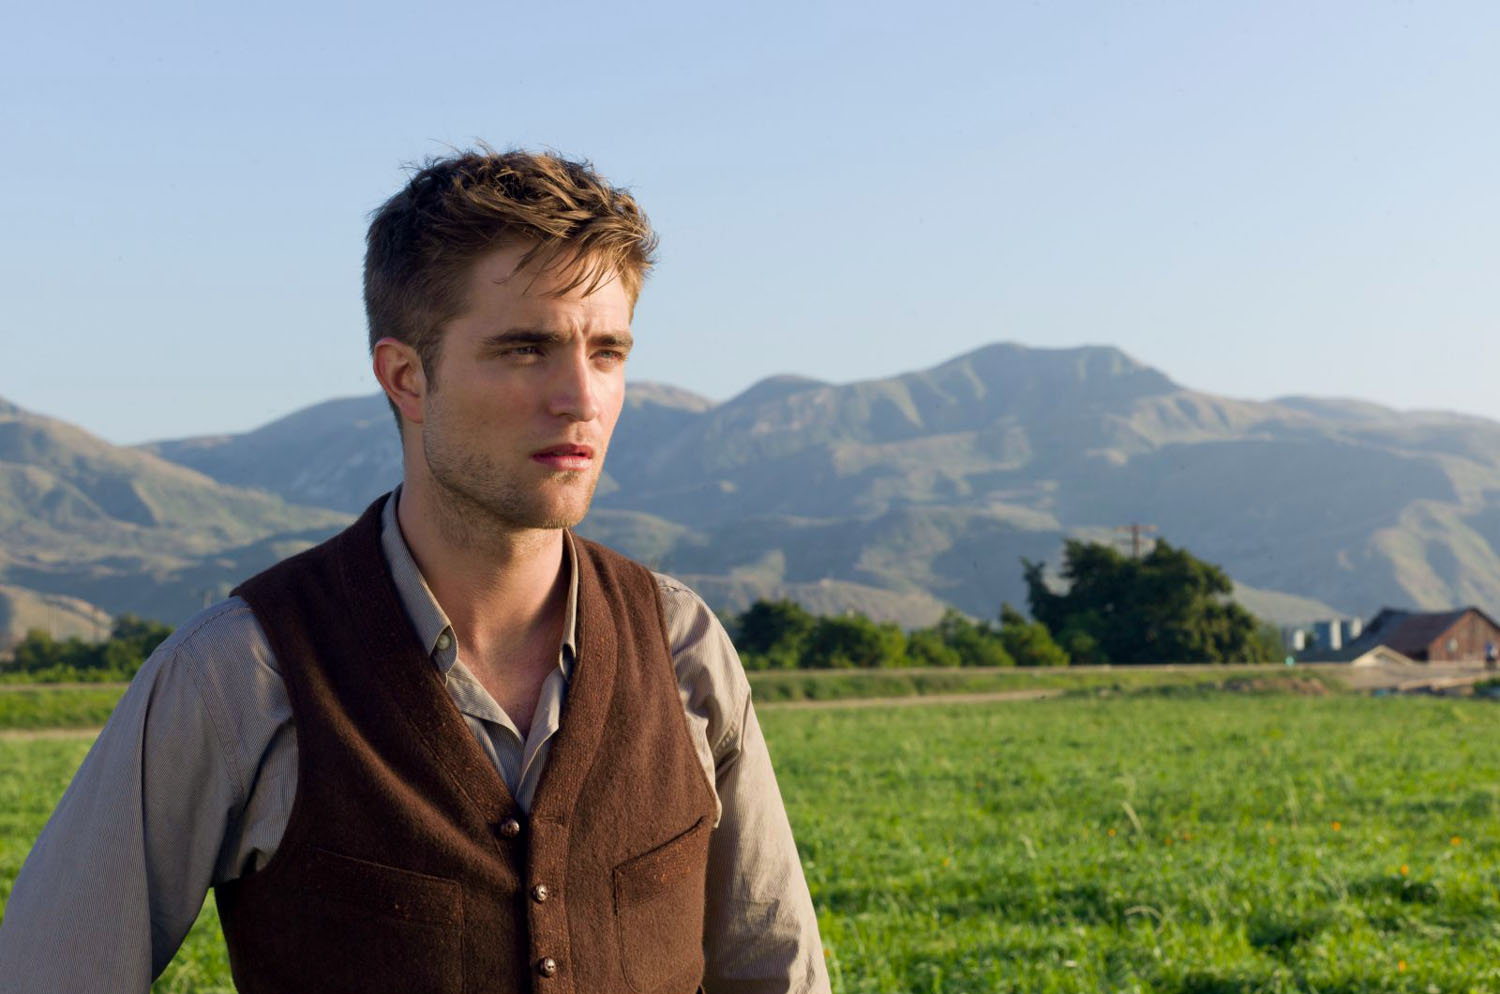 Robert Pattinson in Francis Lawrence's Water for Elephants